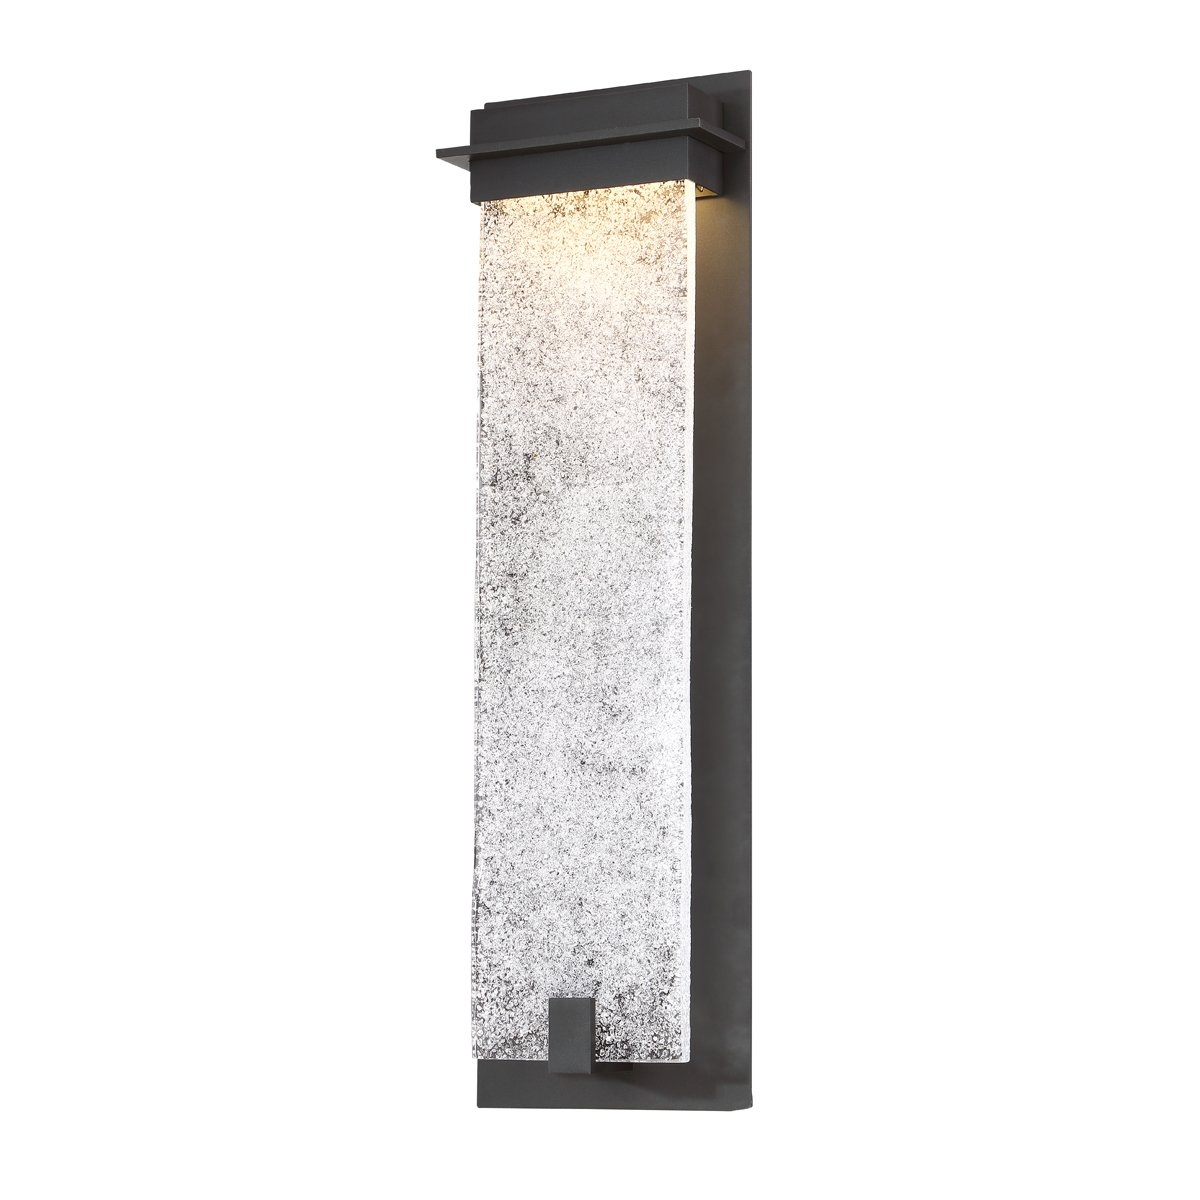 WAC Lighting WS-W41722-BZ Spa 22'' LED Outdoor Wall Light, 22 Inches, Bronze